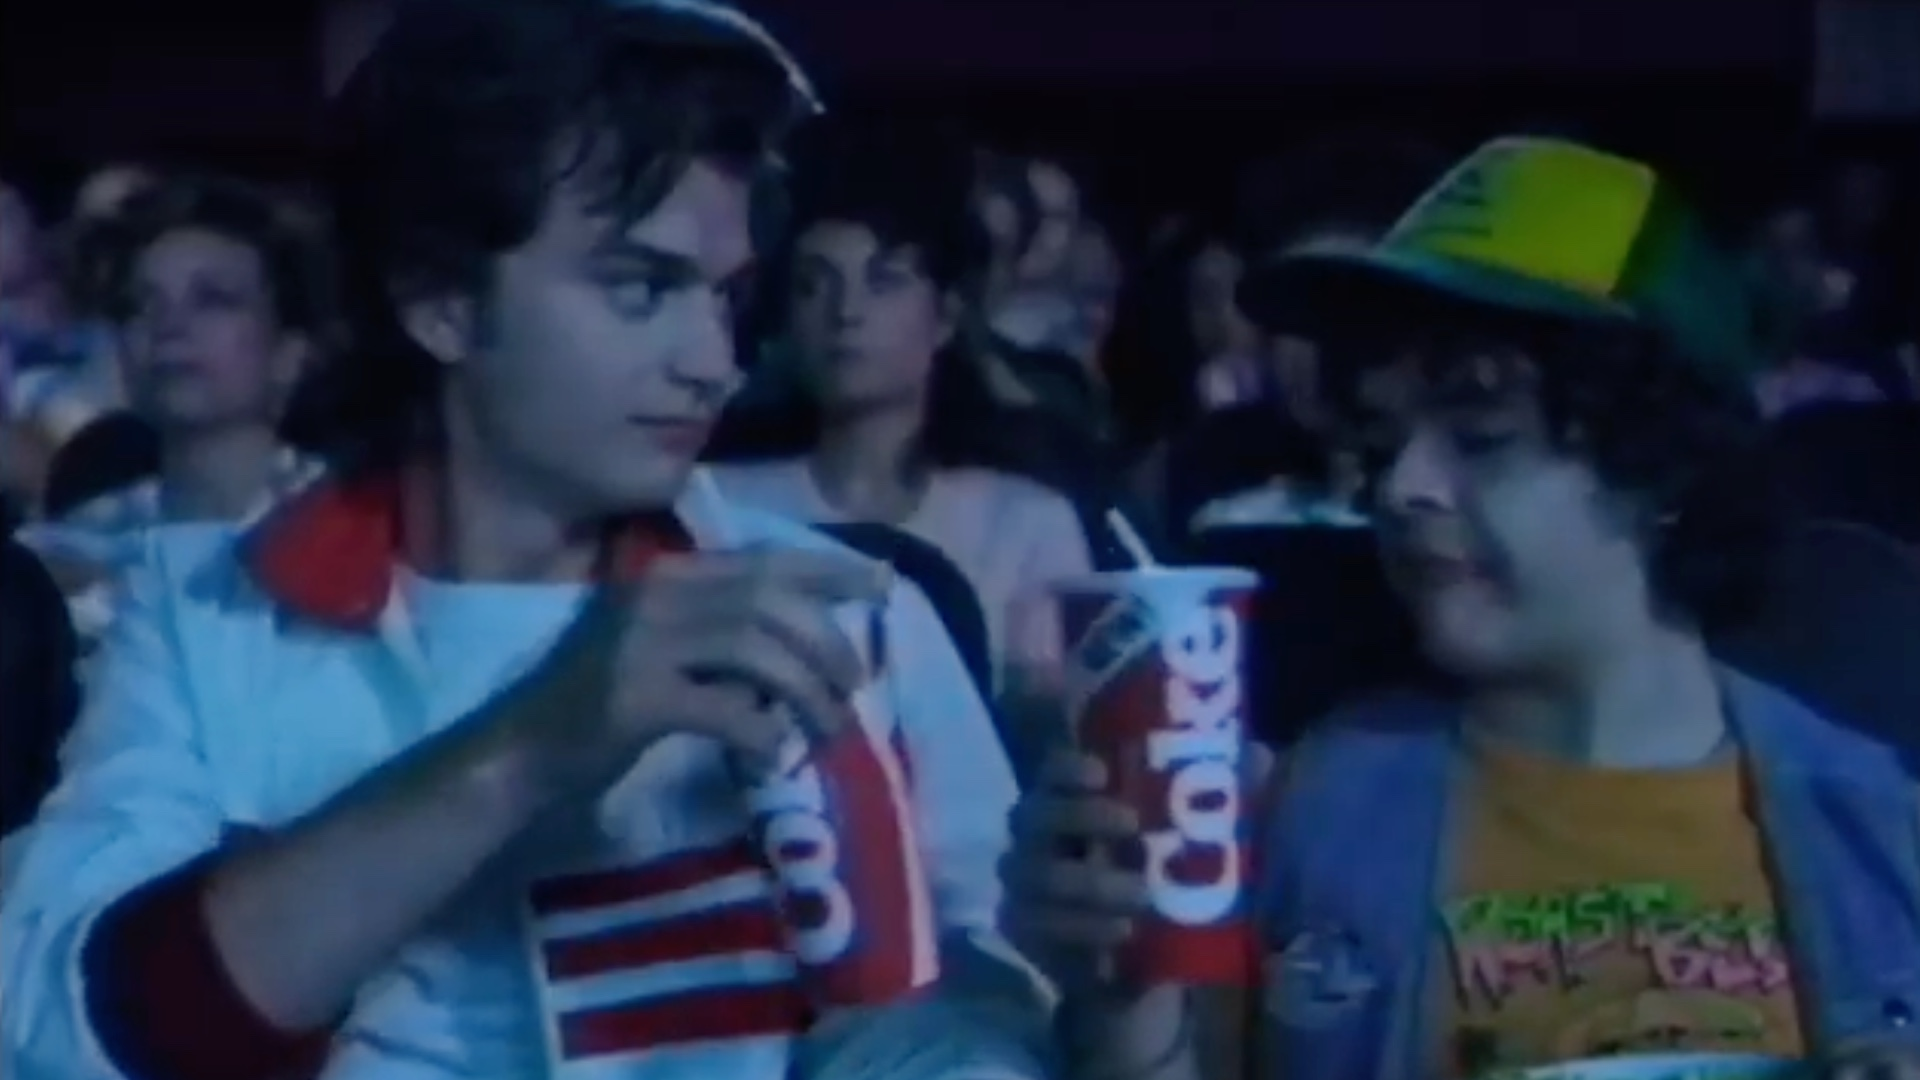 relive-the-greatness-of-1985-with-this-extended-stranger-things-new-coke-commercial-social.jpg